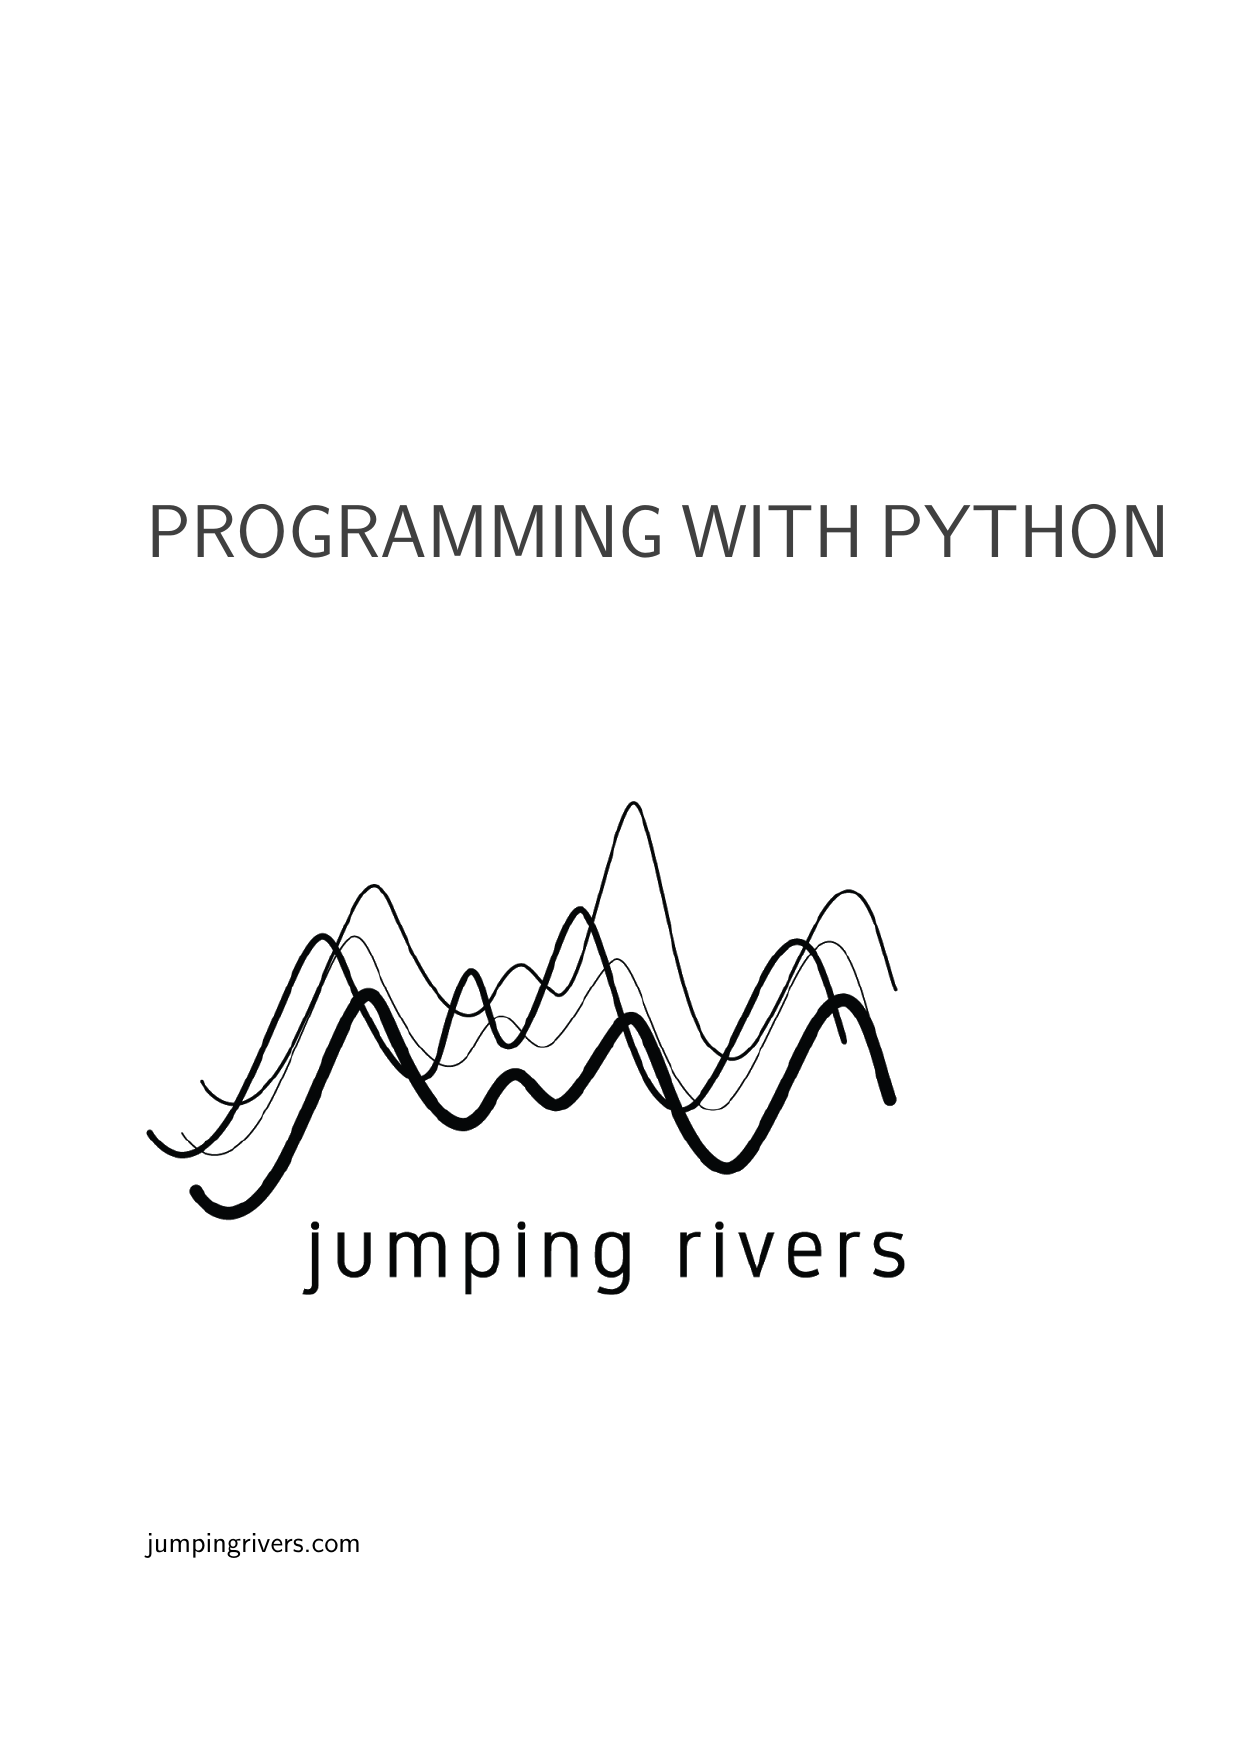 Example course material for 'Programming with Python